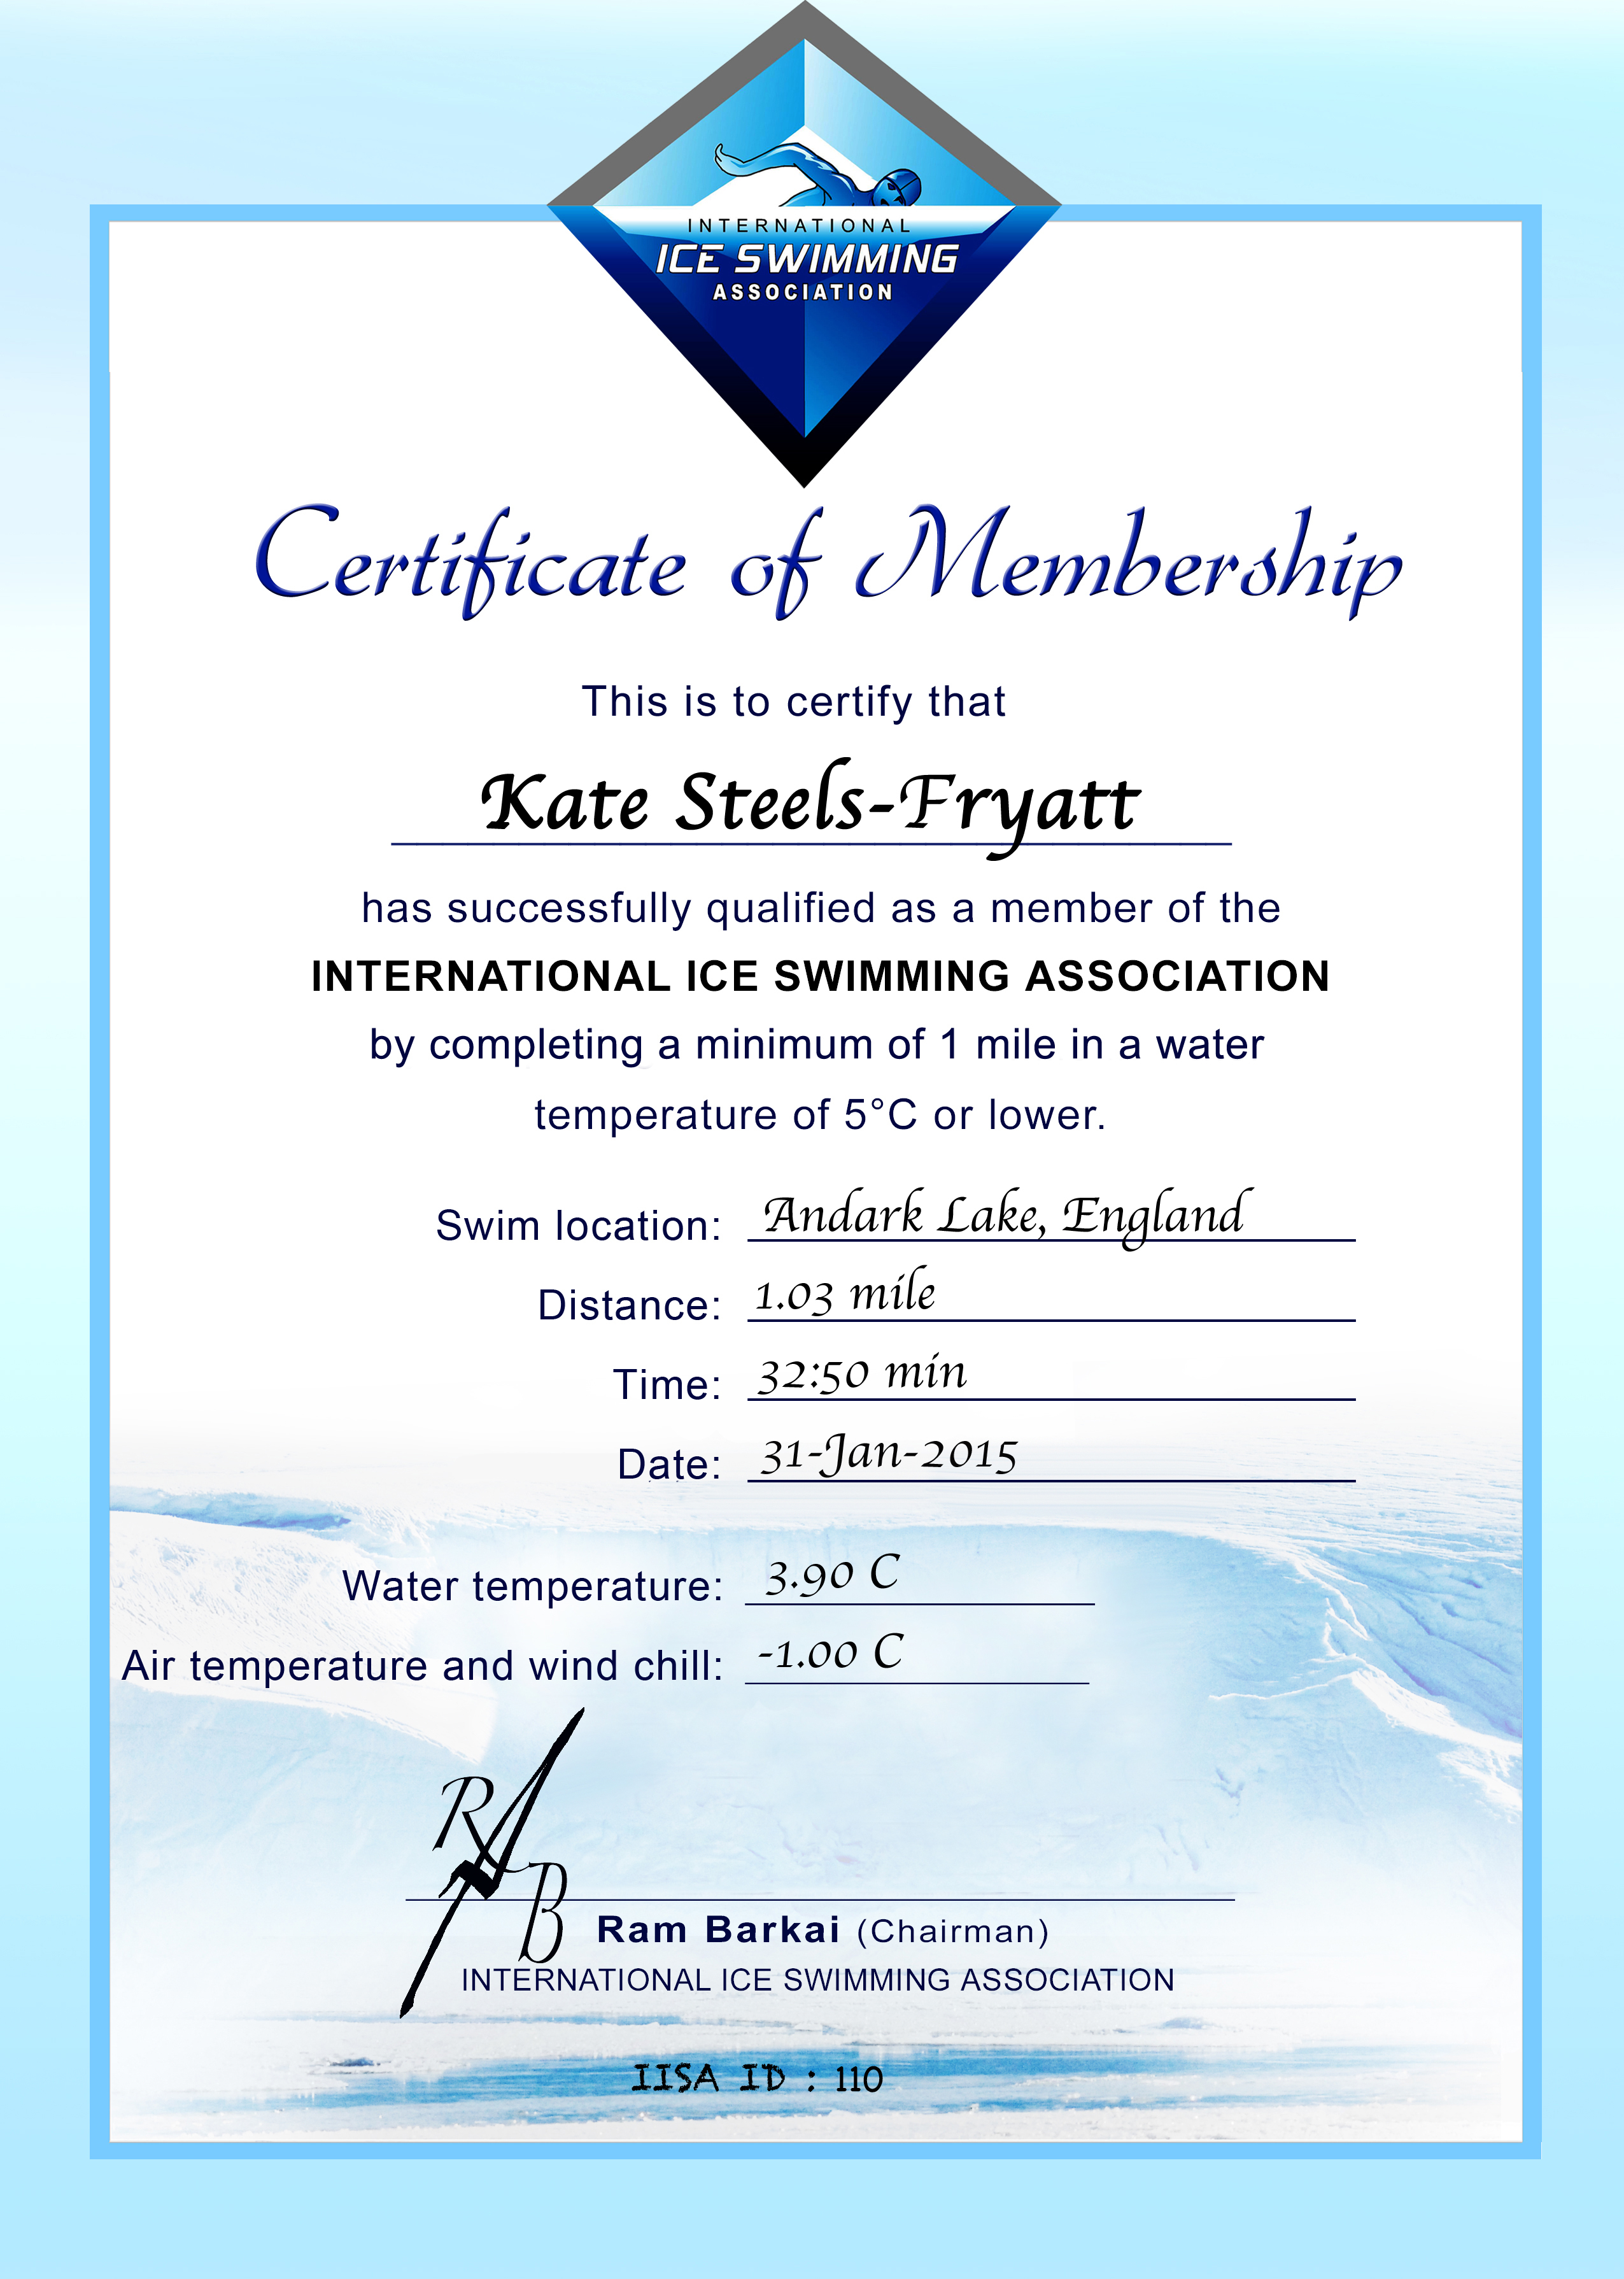 Ice Mile Certificate - Kate Steels